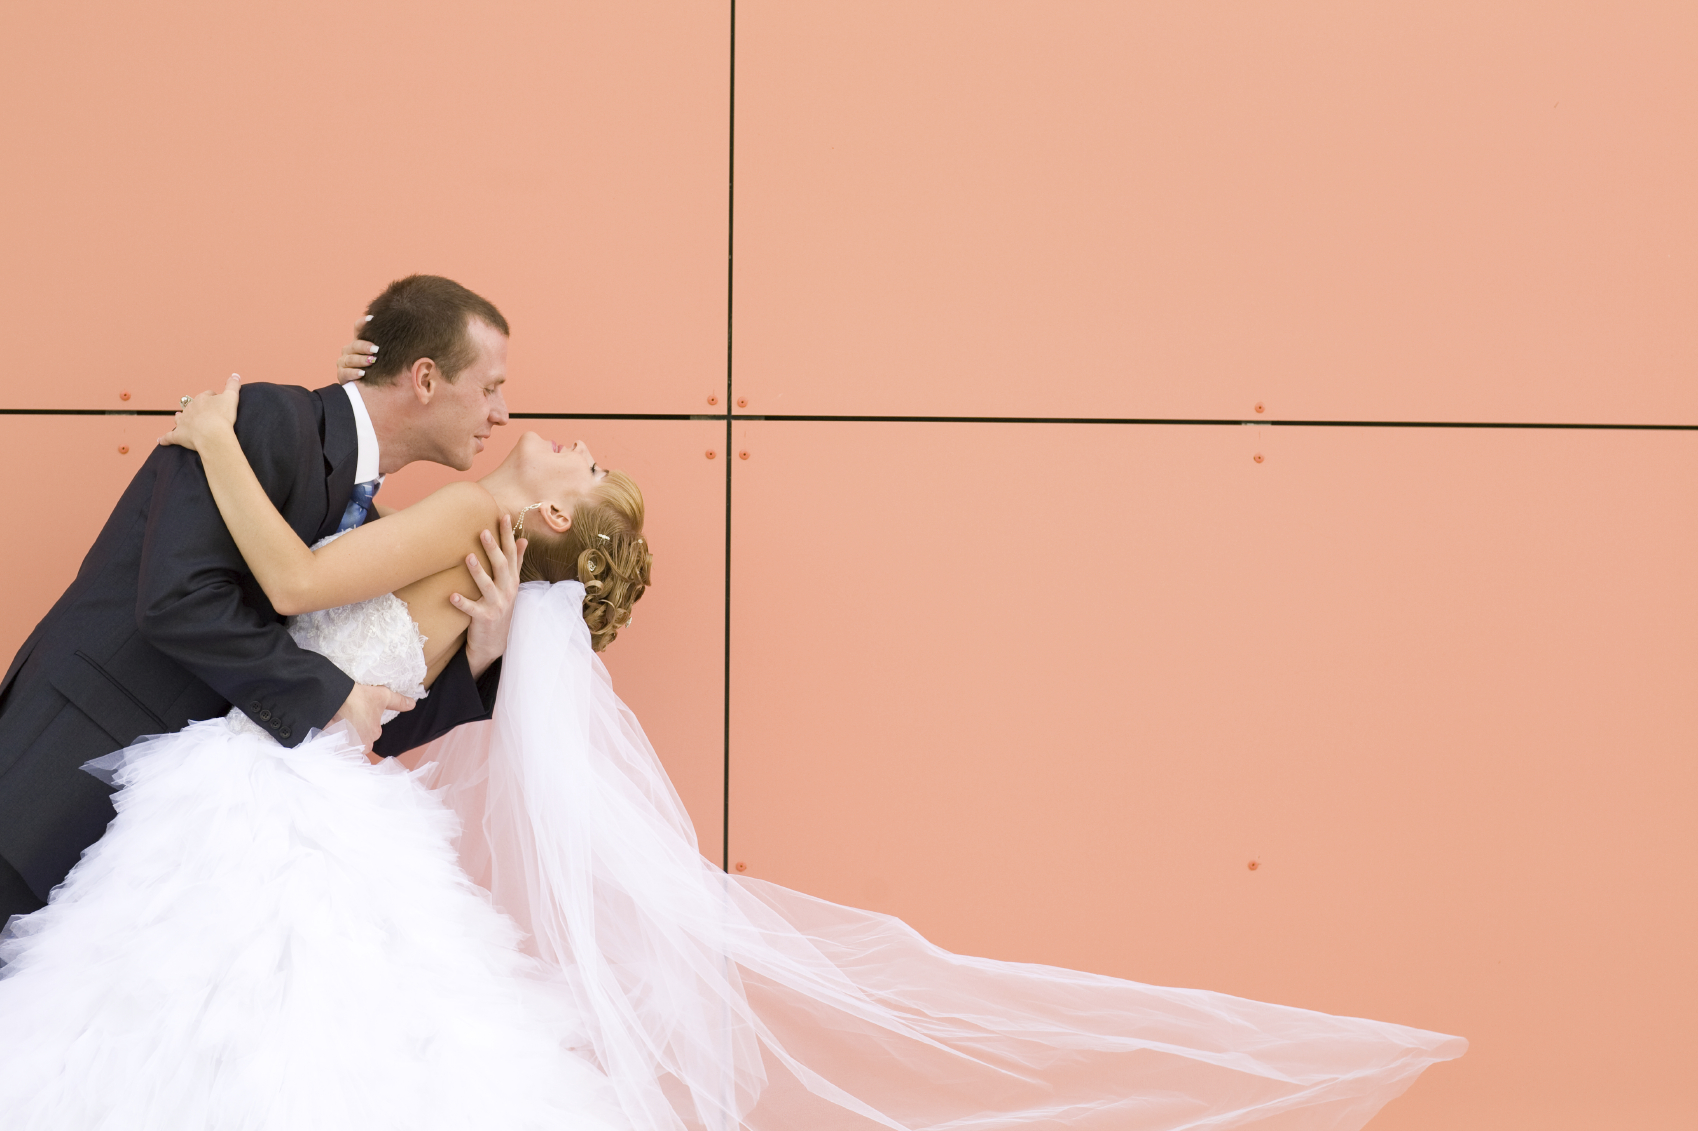 If you're feeling anxious about your first dance as a married couple, taking dance lessons before the big day can help you relax.